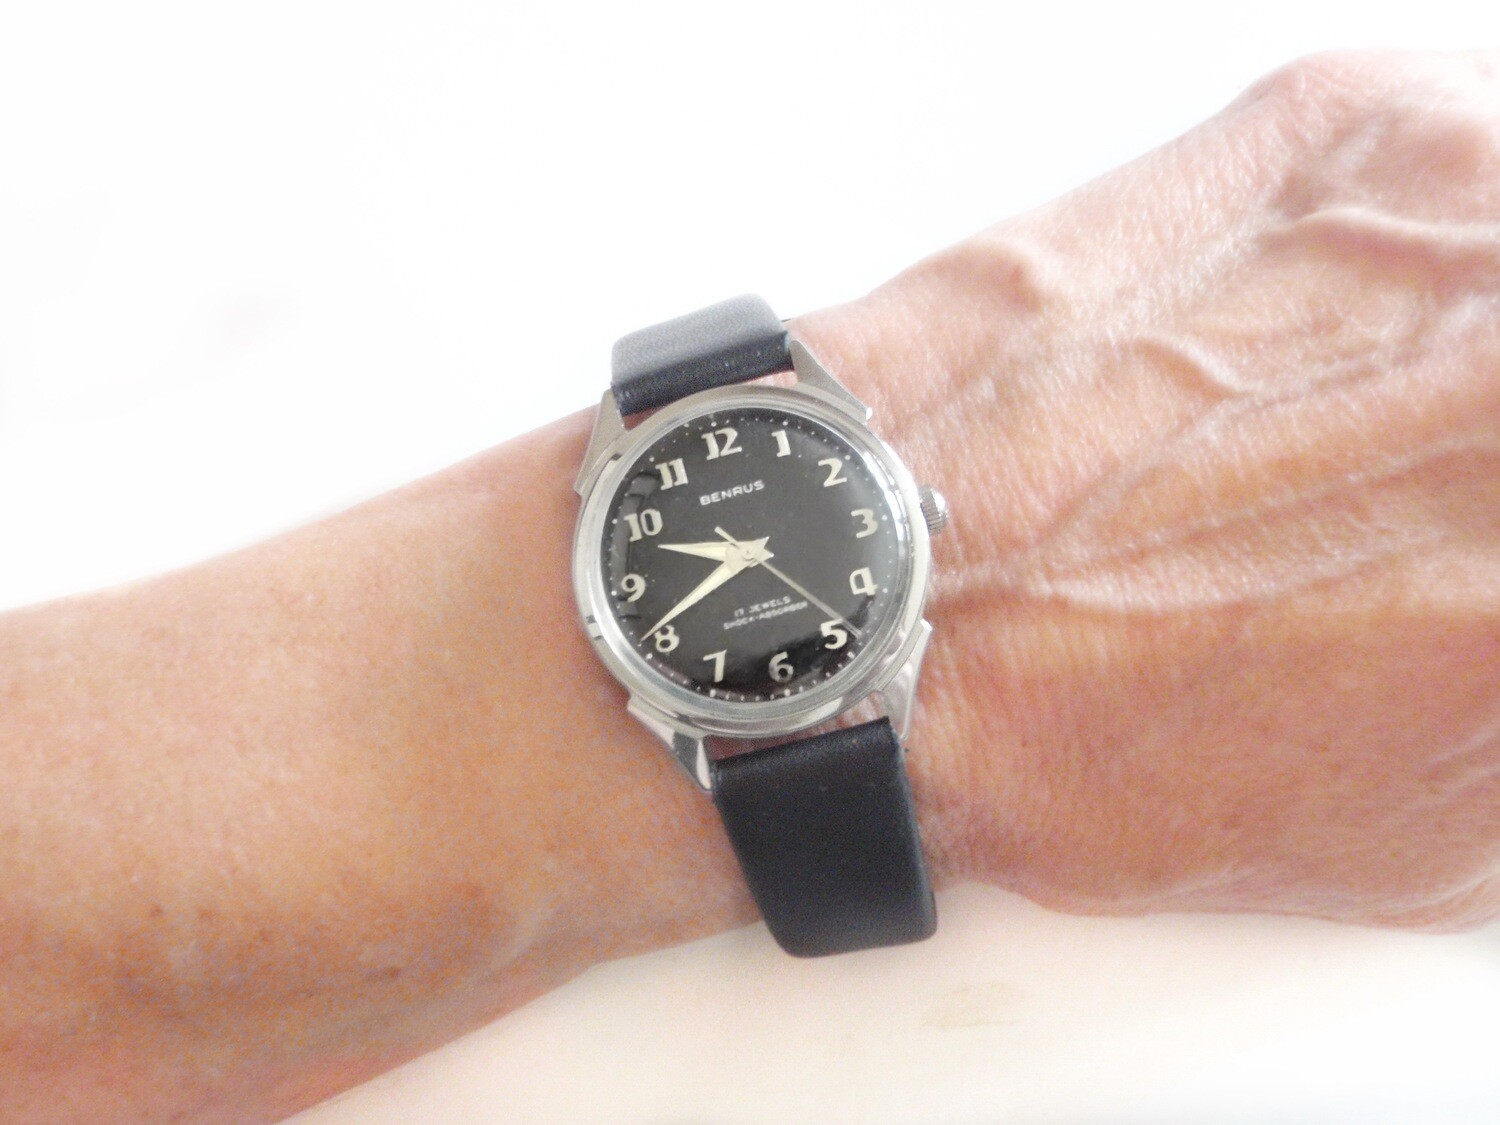 Mid Century Benrus Watch 3051 Series Black Dial Fancy Lugs in Case